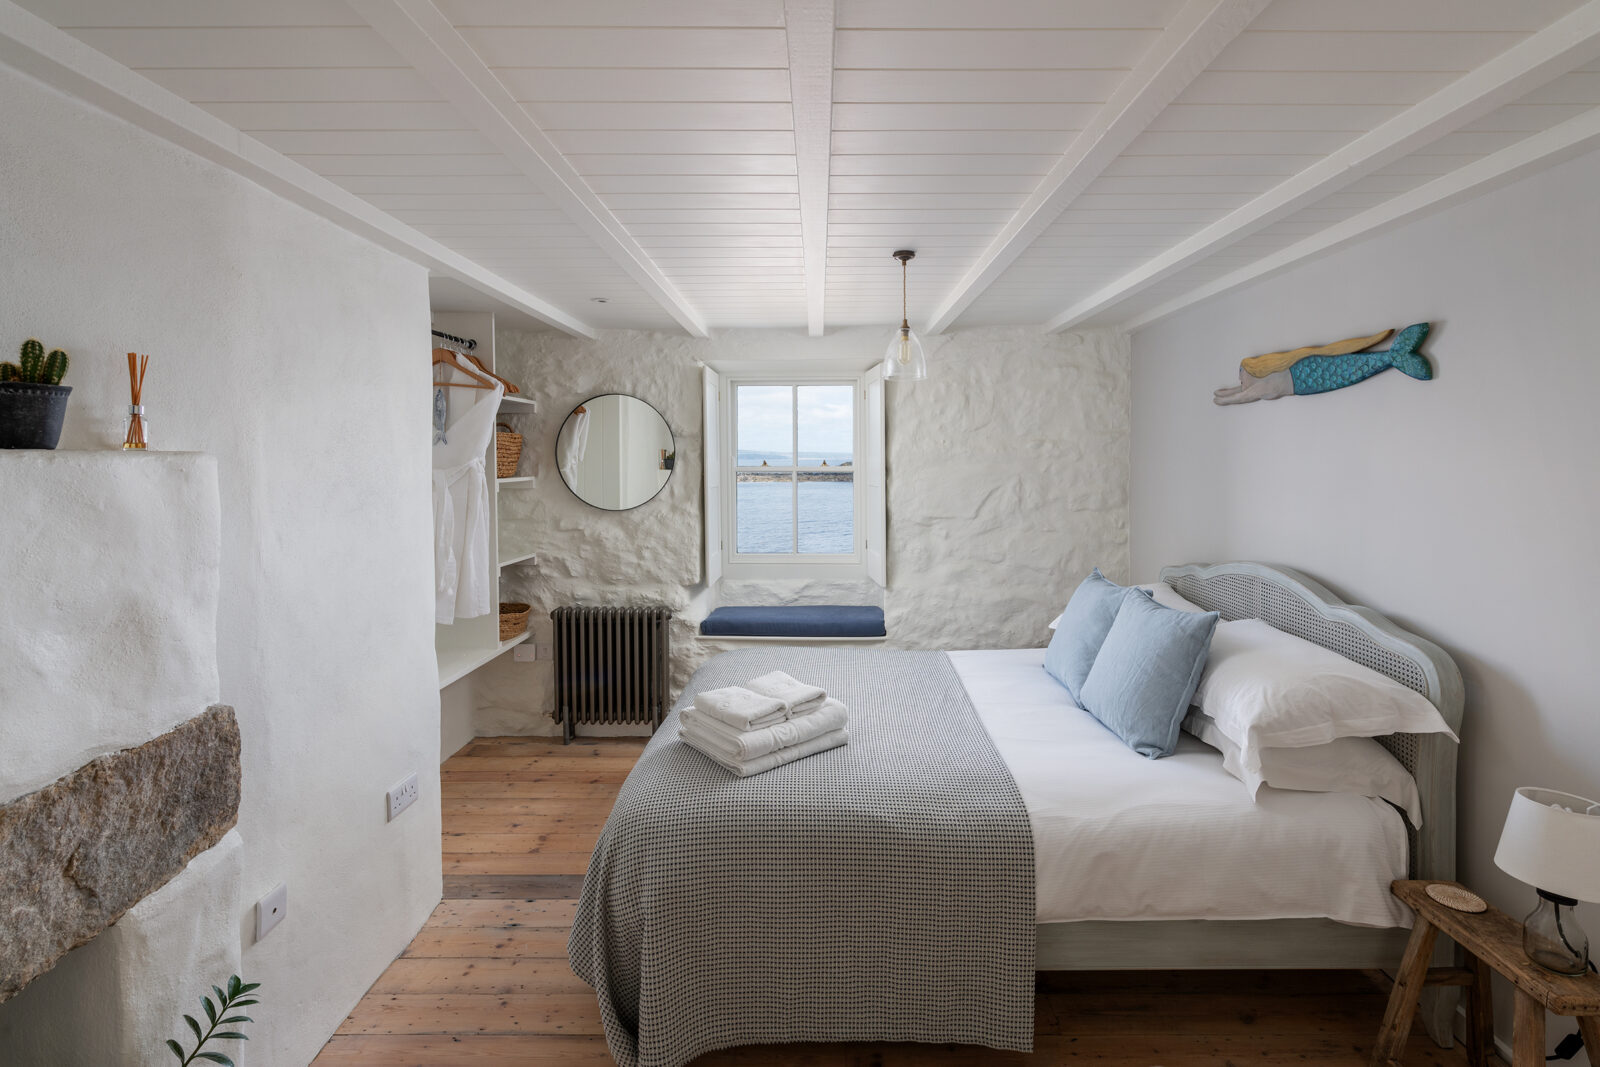 The main bedroom has painted stone walls and an original stone fireplace. Pine floorboards run underfoot.